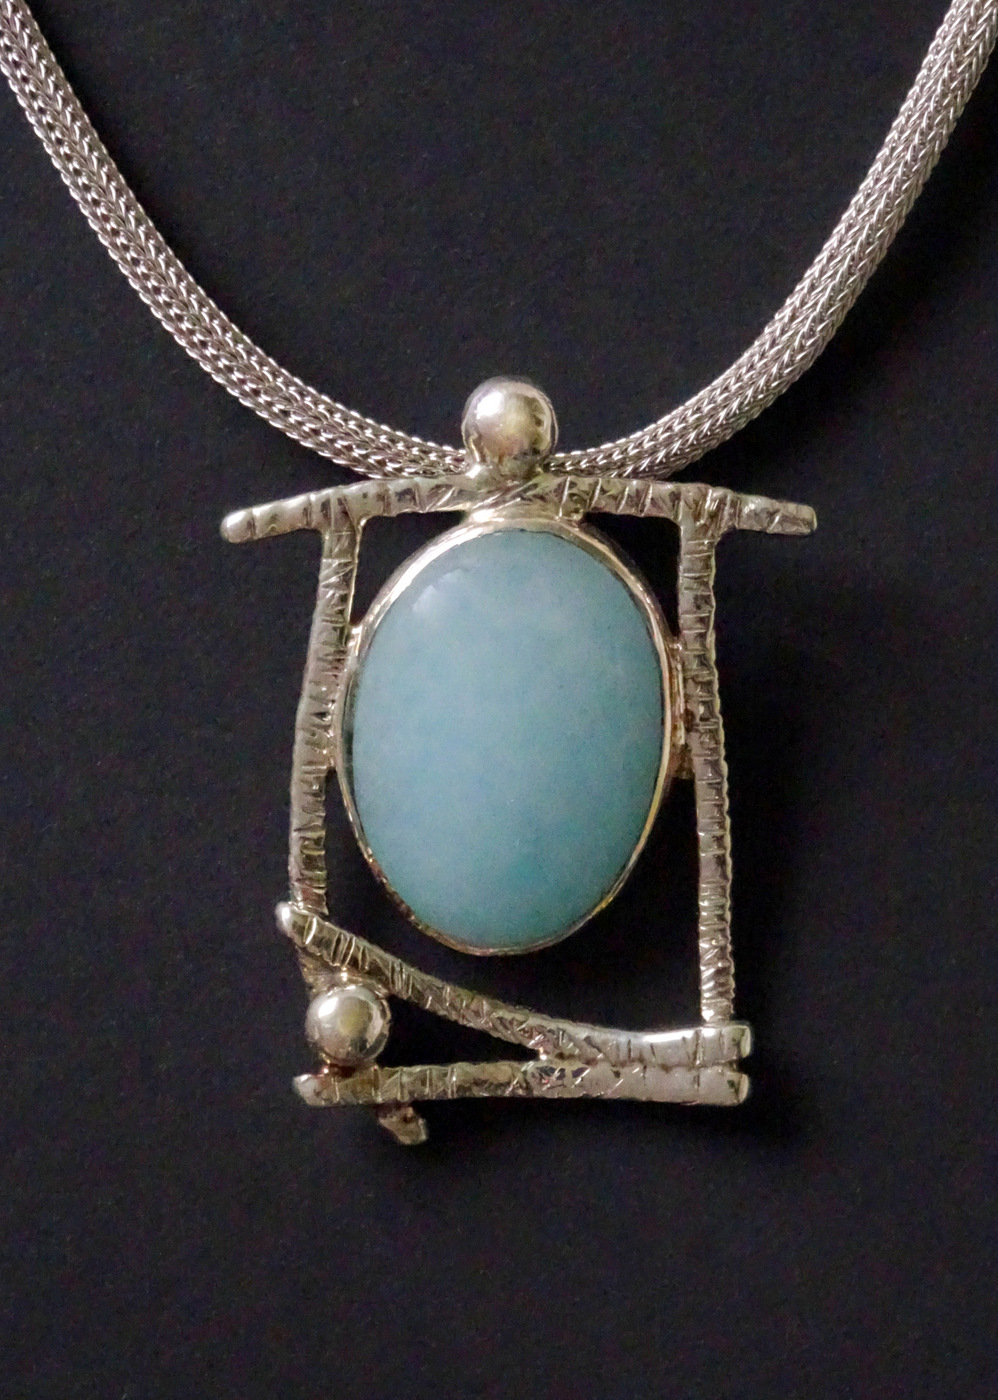 BLUE MOON STONE GEOMETRIC PENDANT,  2.0 x 1.5 inches,  16 inch adjustable chain